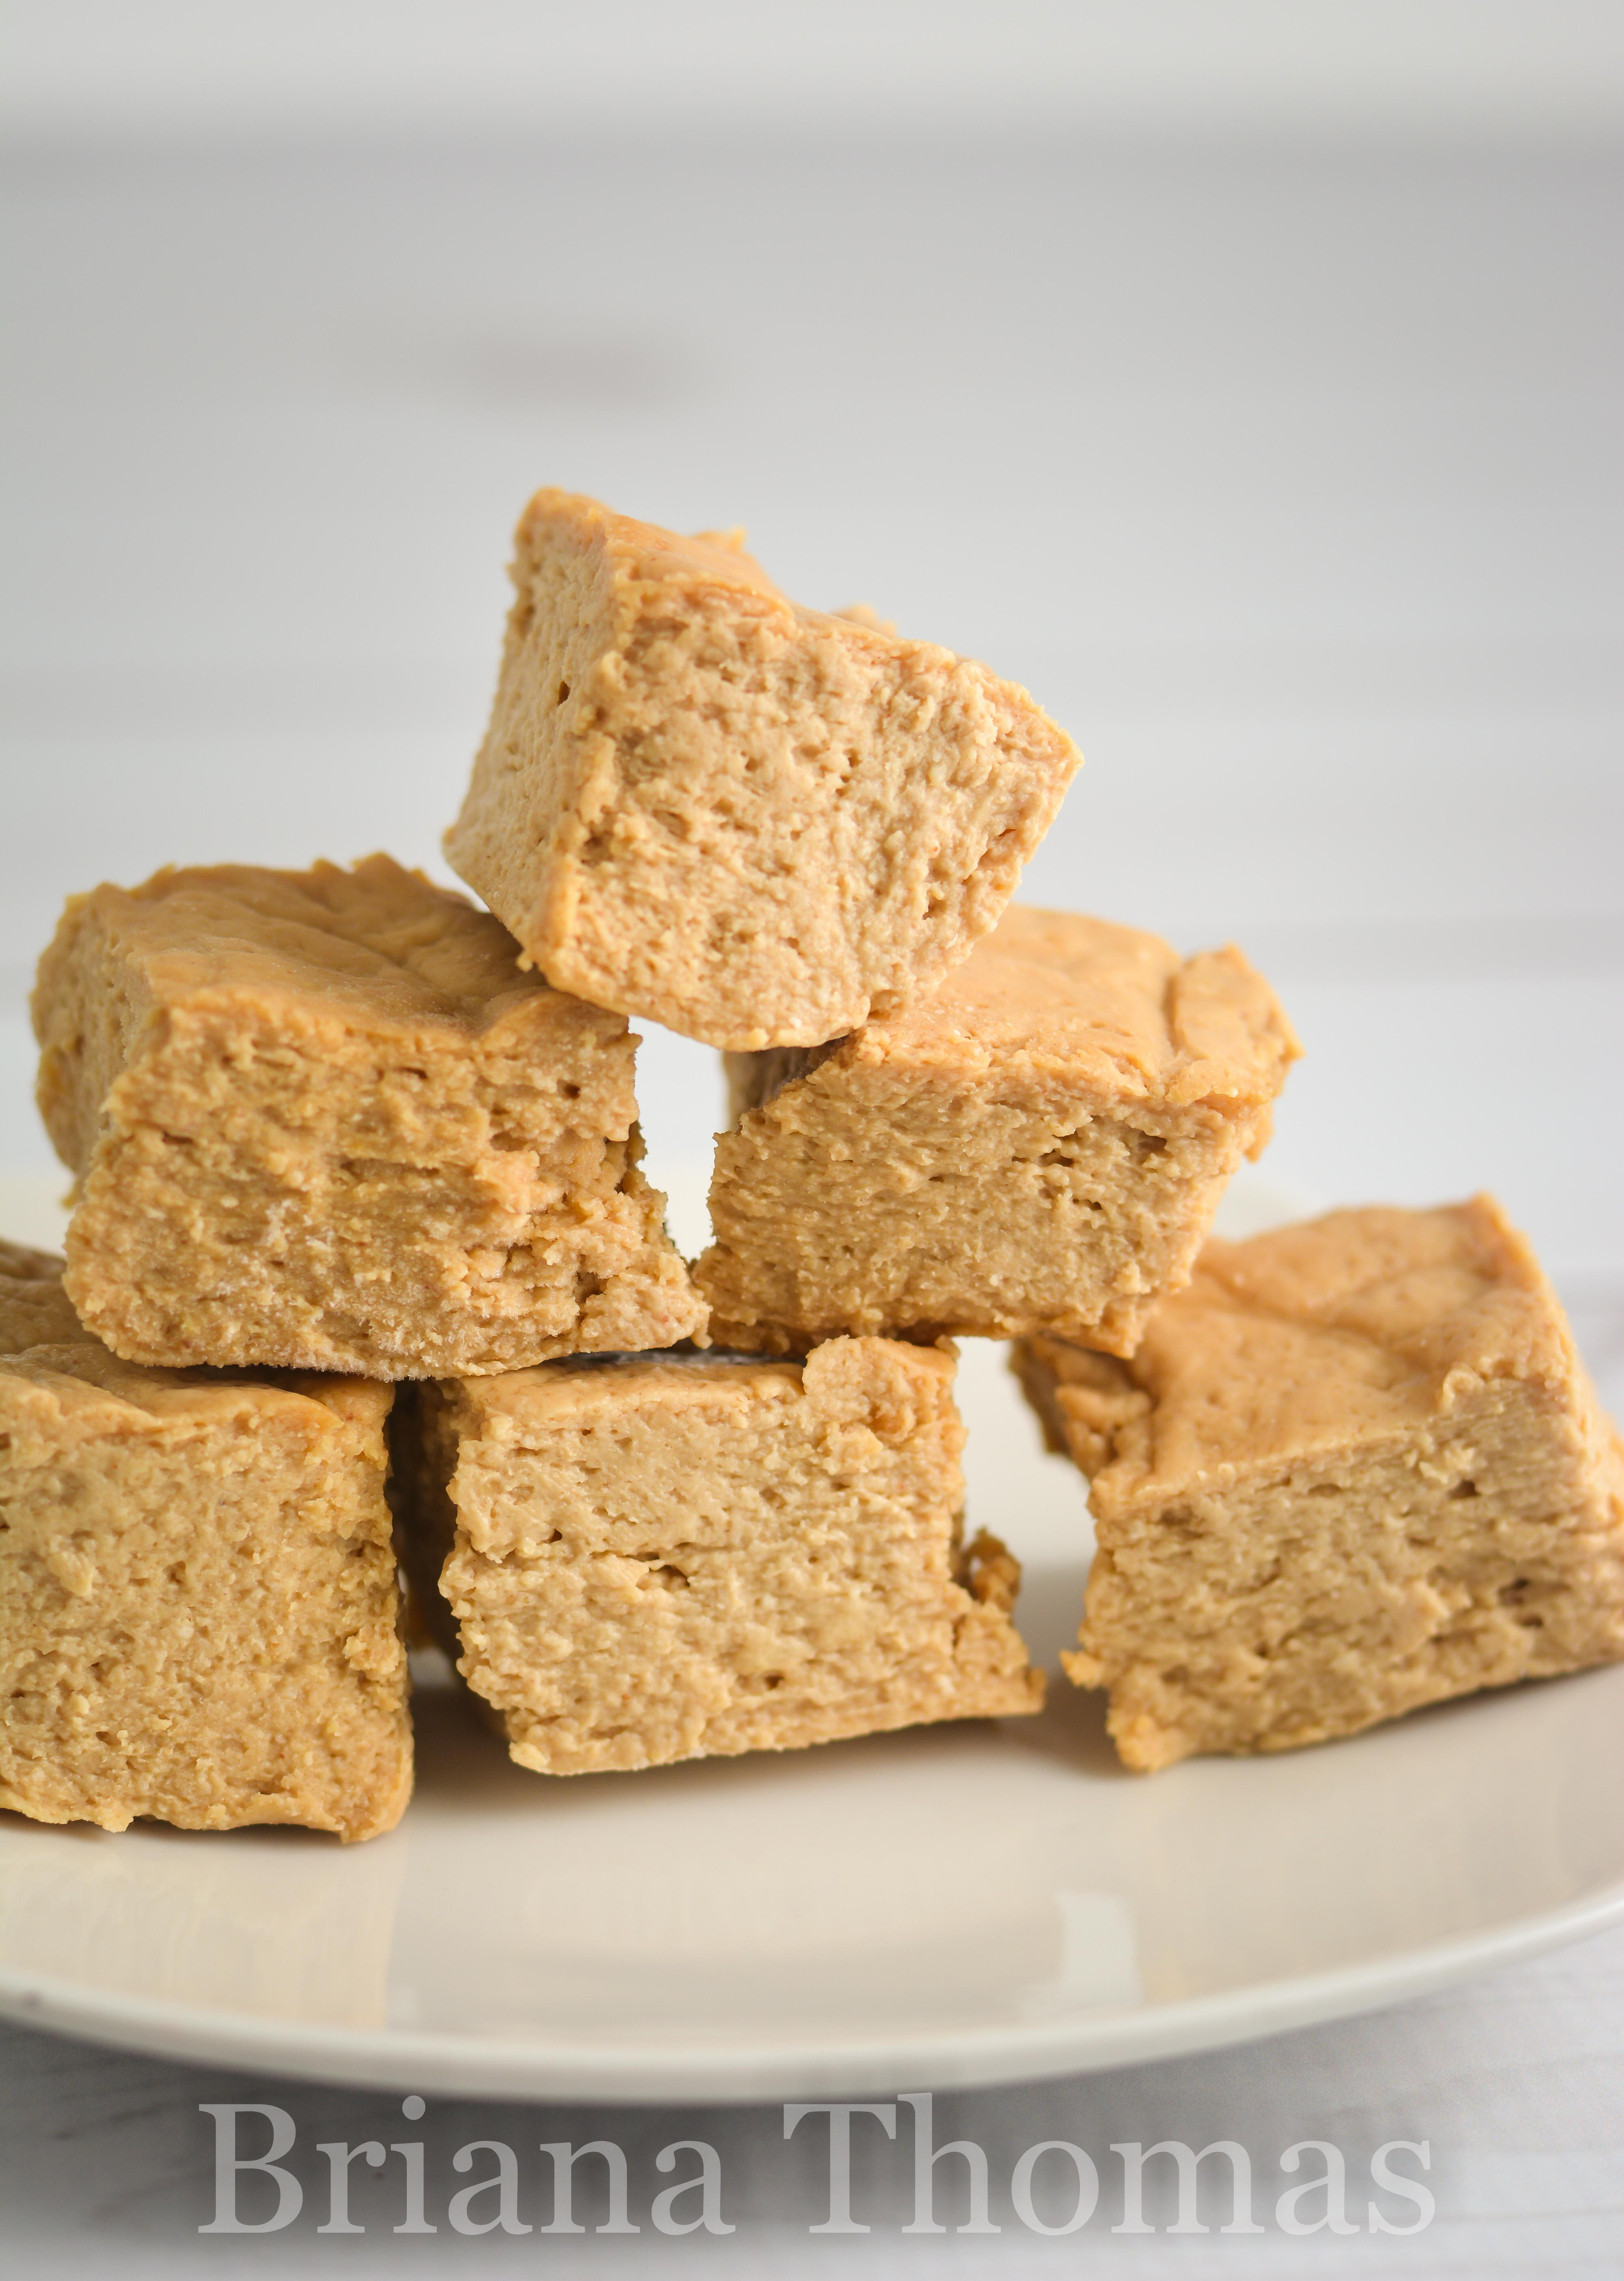 These Chewy Peanut Butter Protein Bites make a great snack! Each square has 5g protein, and coconut oil is the main fat source. THM:S, low carb, sugar free